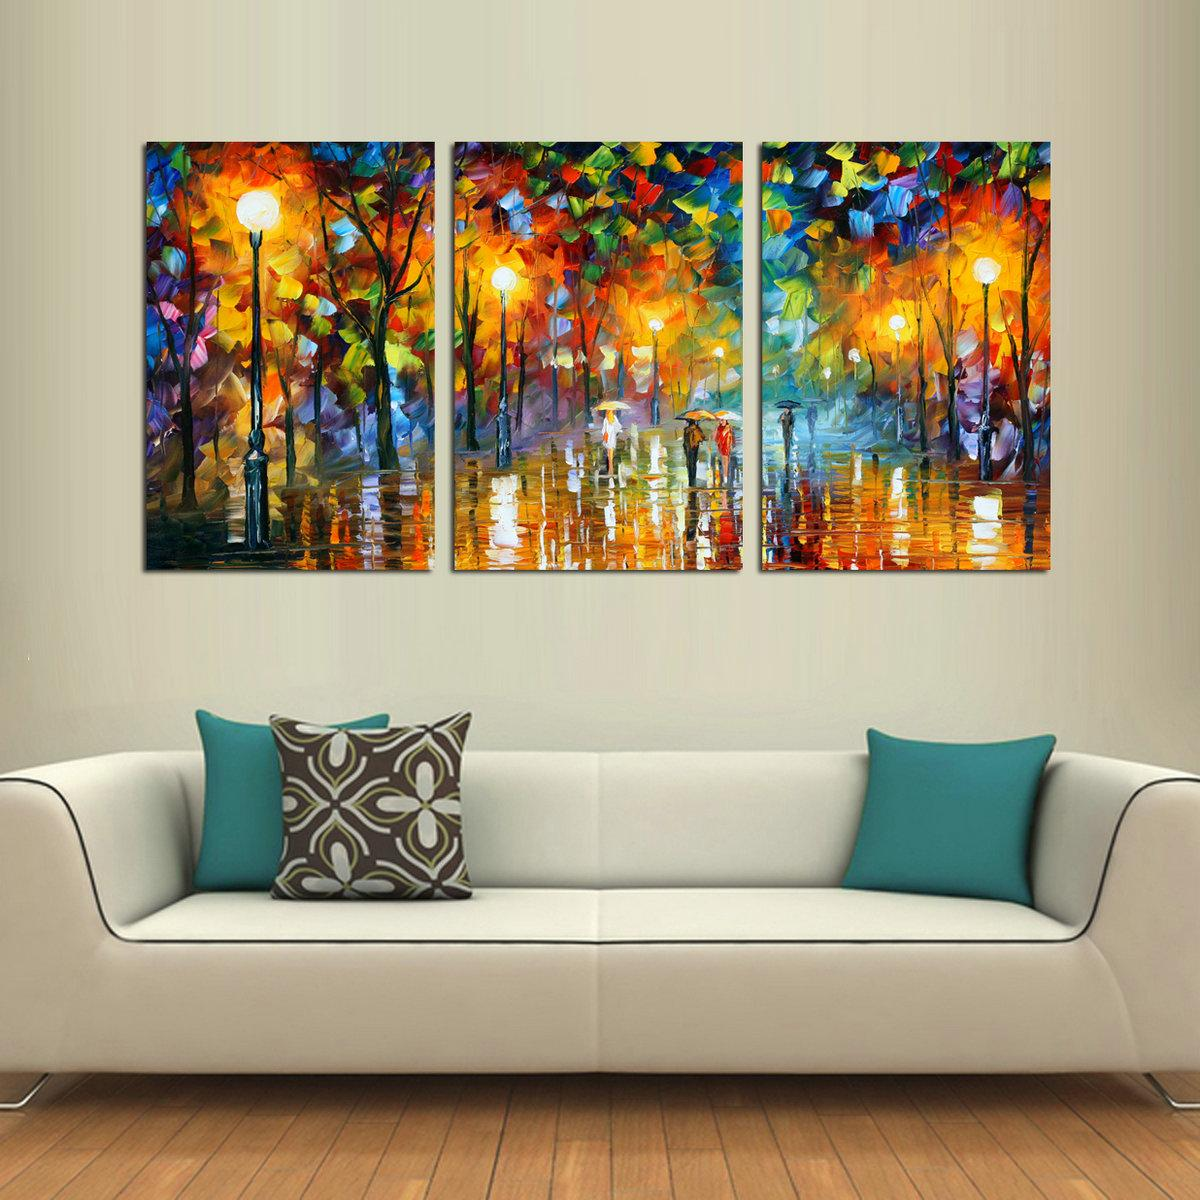 Oil Painting HD Print Leonid Afremov Abstract People Walking On The Street On Canvas Modern Decoration Wall Art Without Framed / With framed